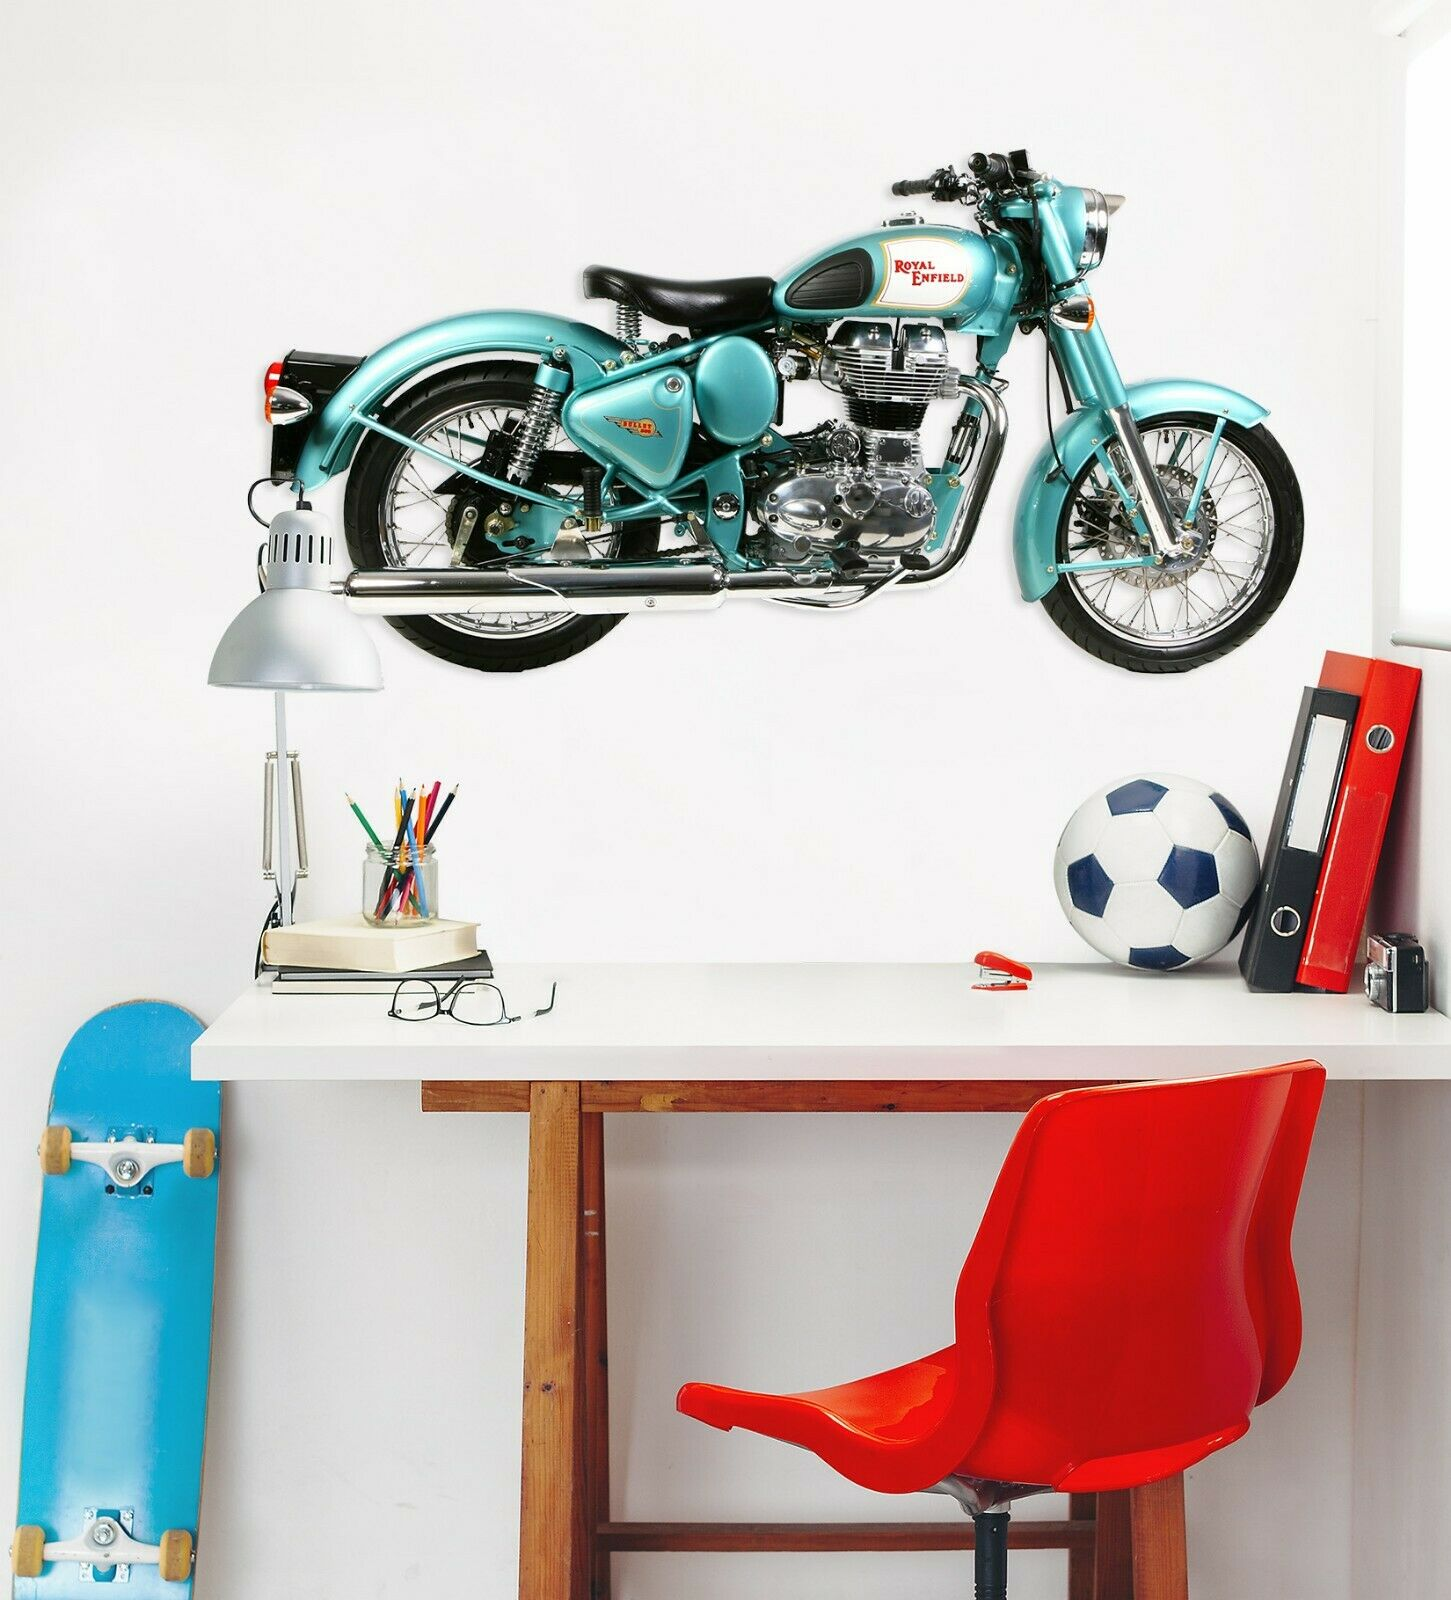 3D Royal Enfield O70 Car Wallpaper Mural Poster Transport Wall Stickers Amy